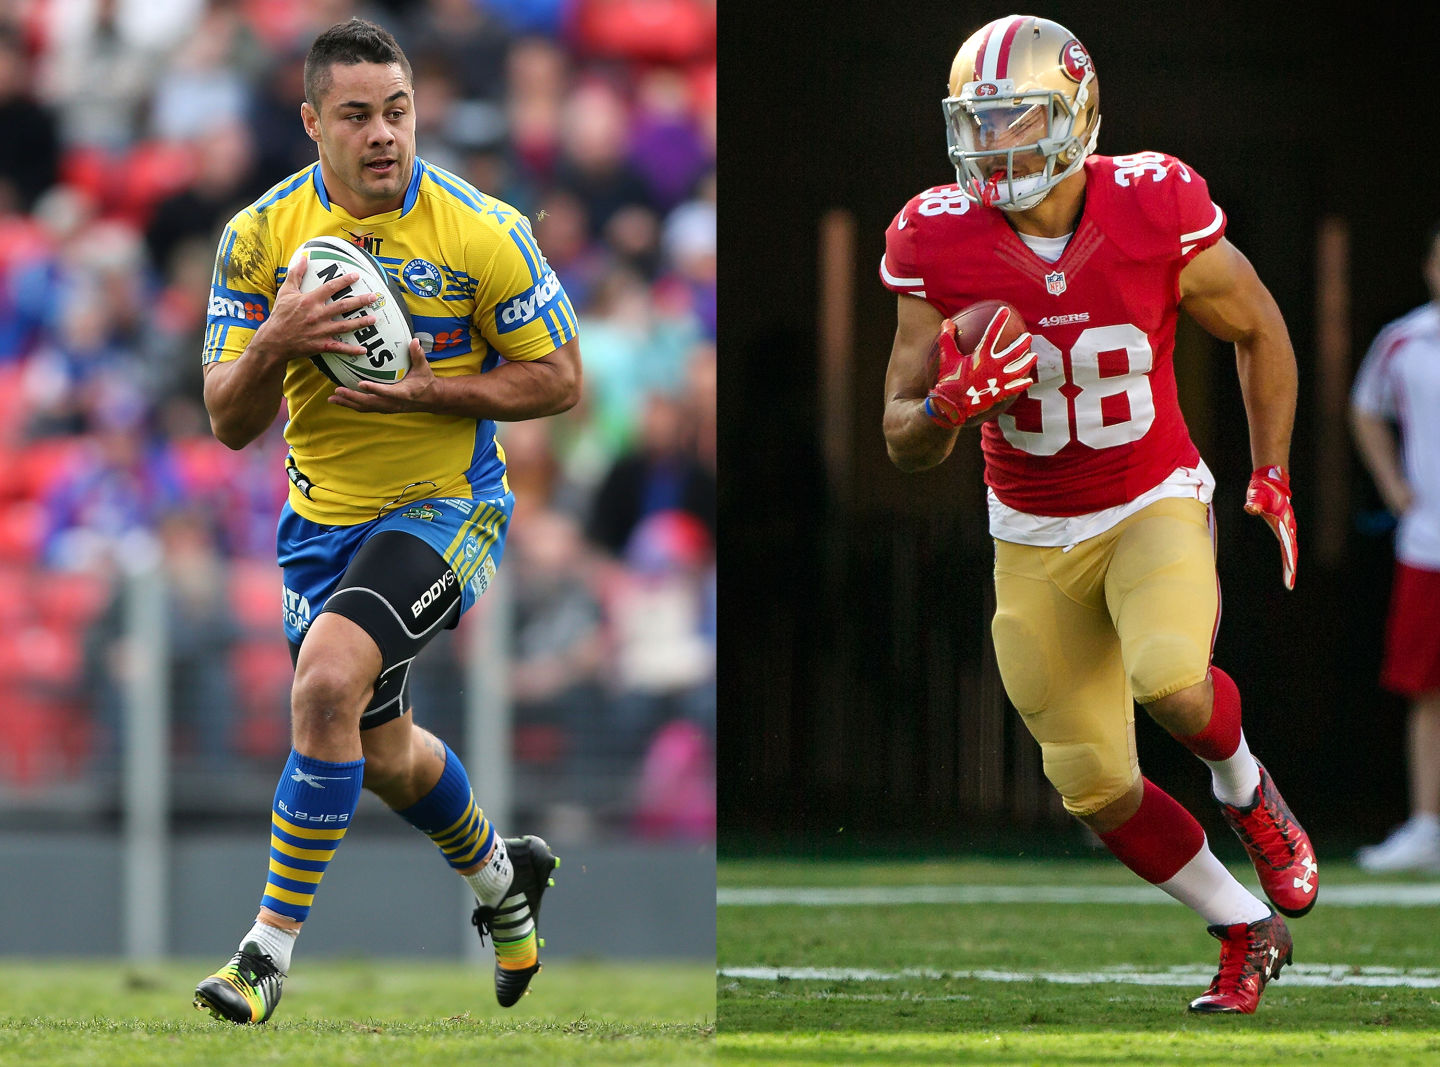 Jarryd Hayne Has A Good Chance Of Making The 49ers 53 Man Roster Getty Images